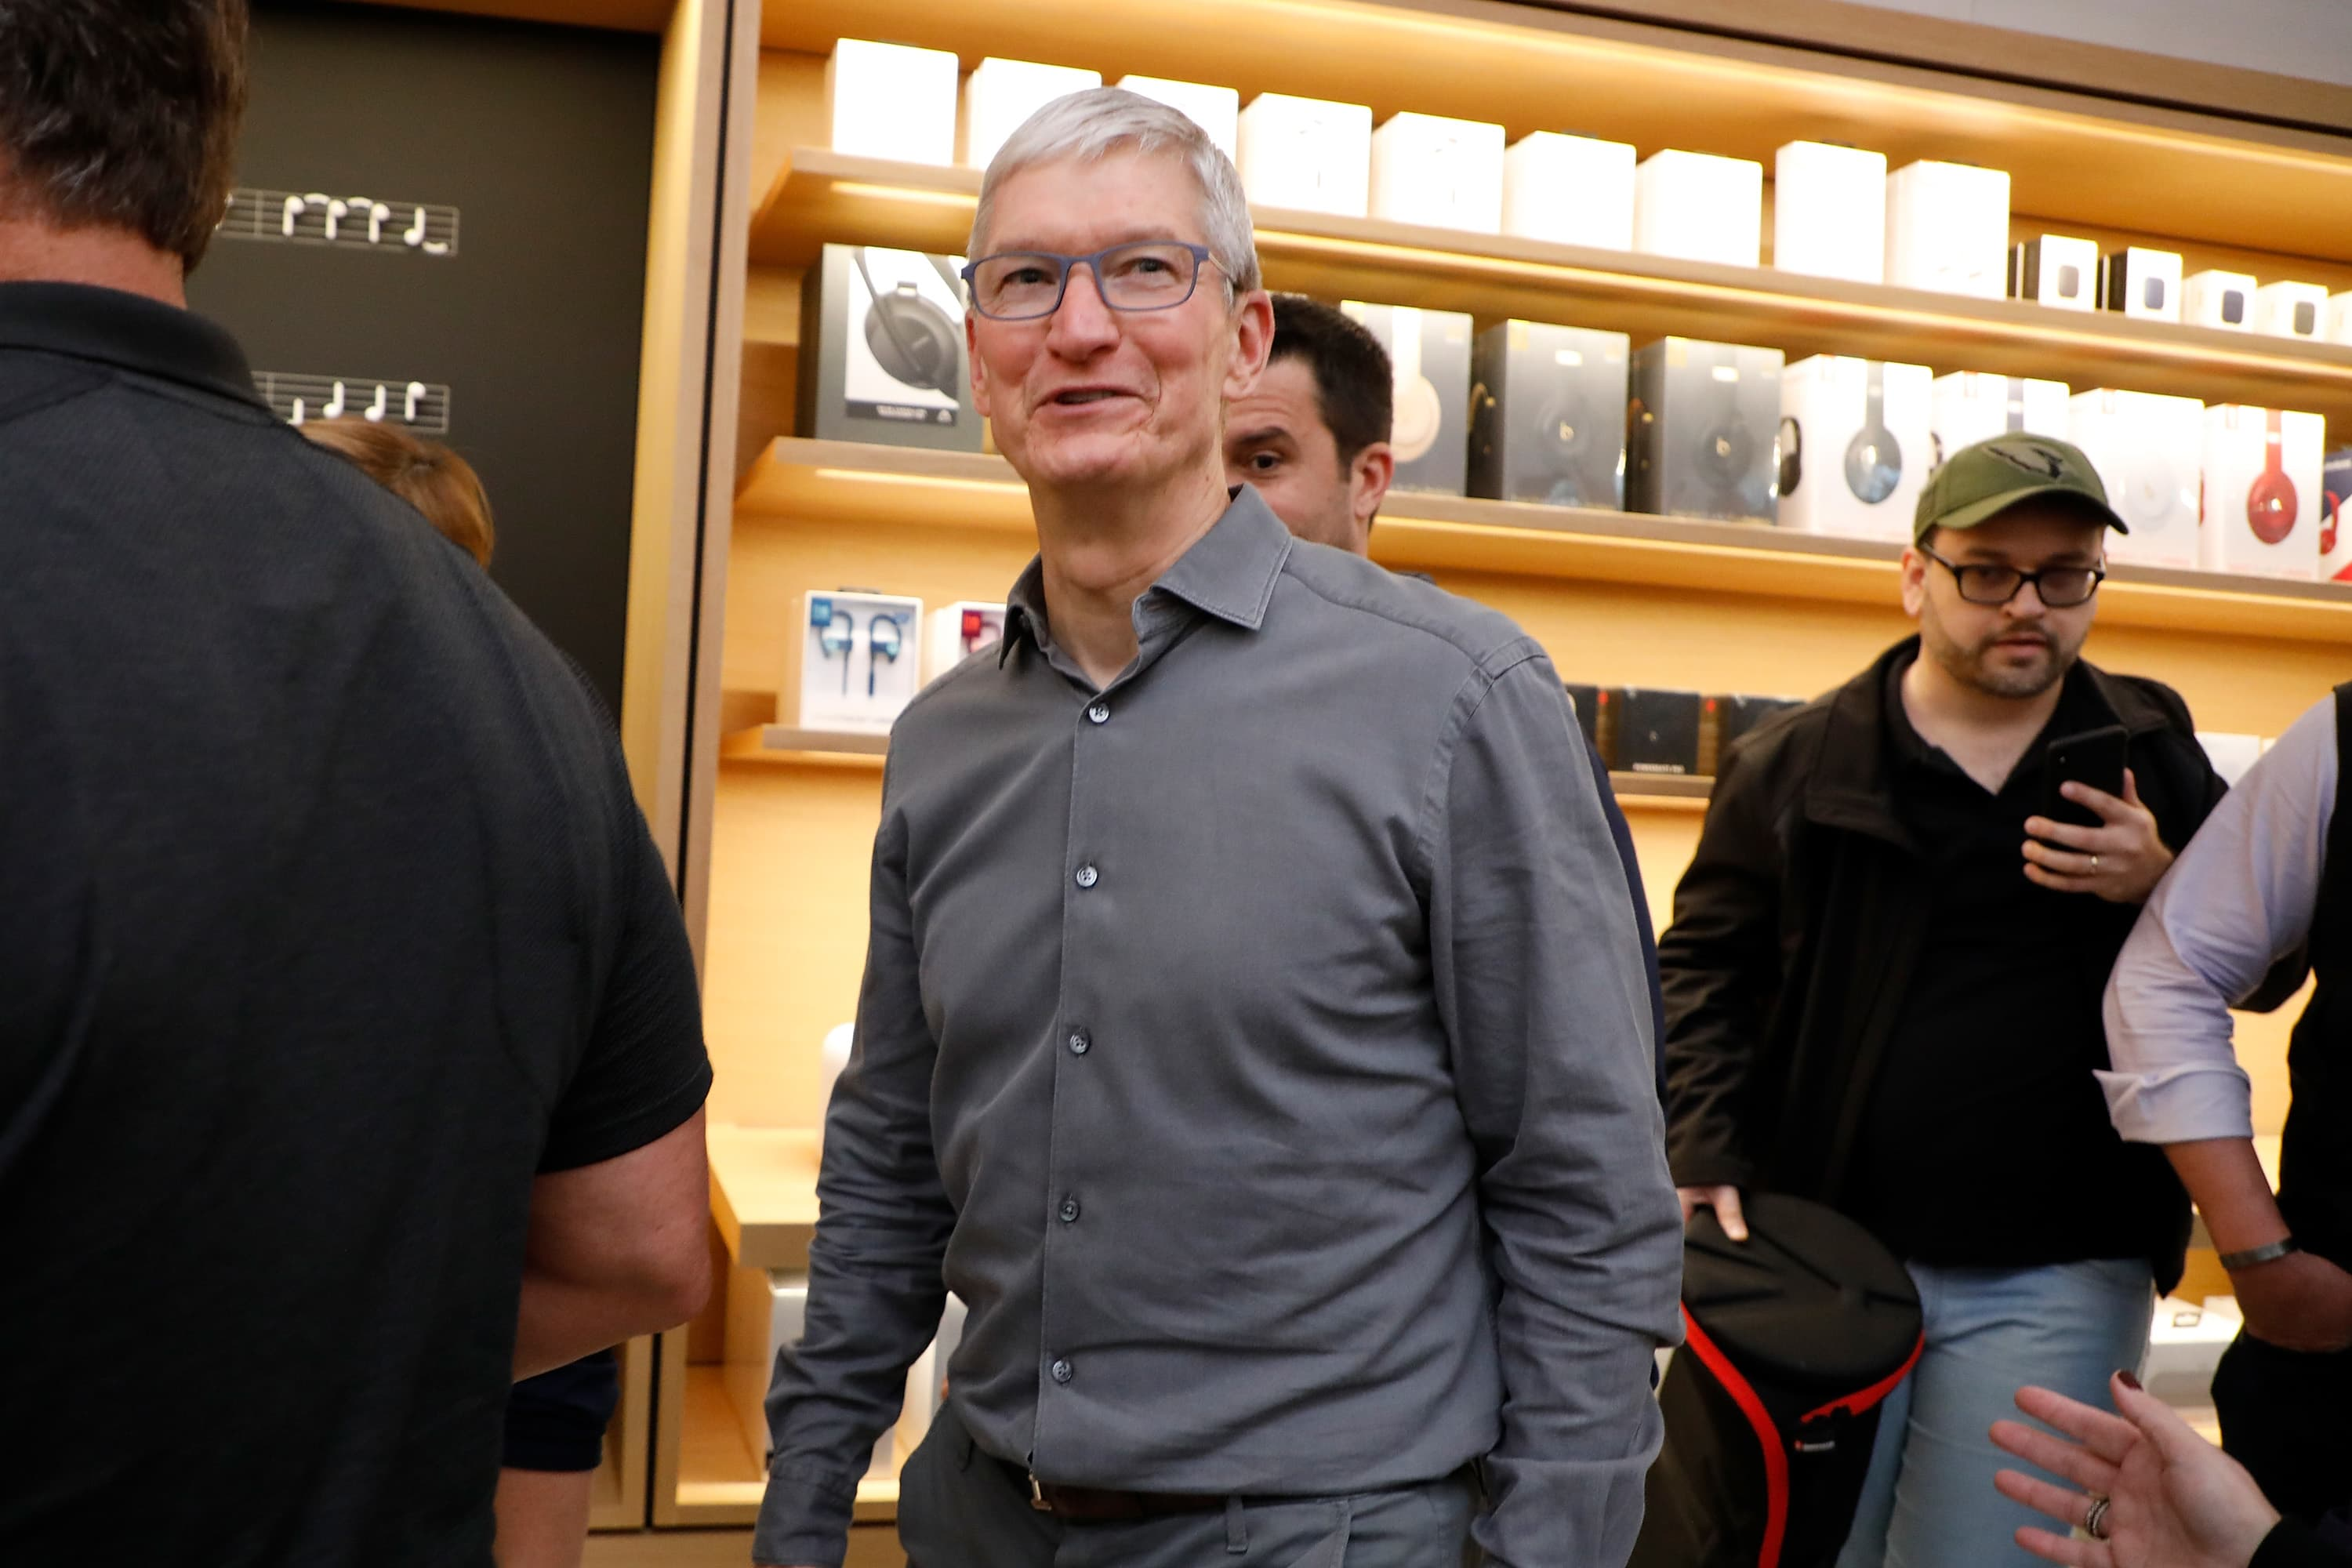 Apple stock has biggest day since Oct. 12 after Buffett endorsement, stores reopen